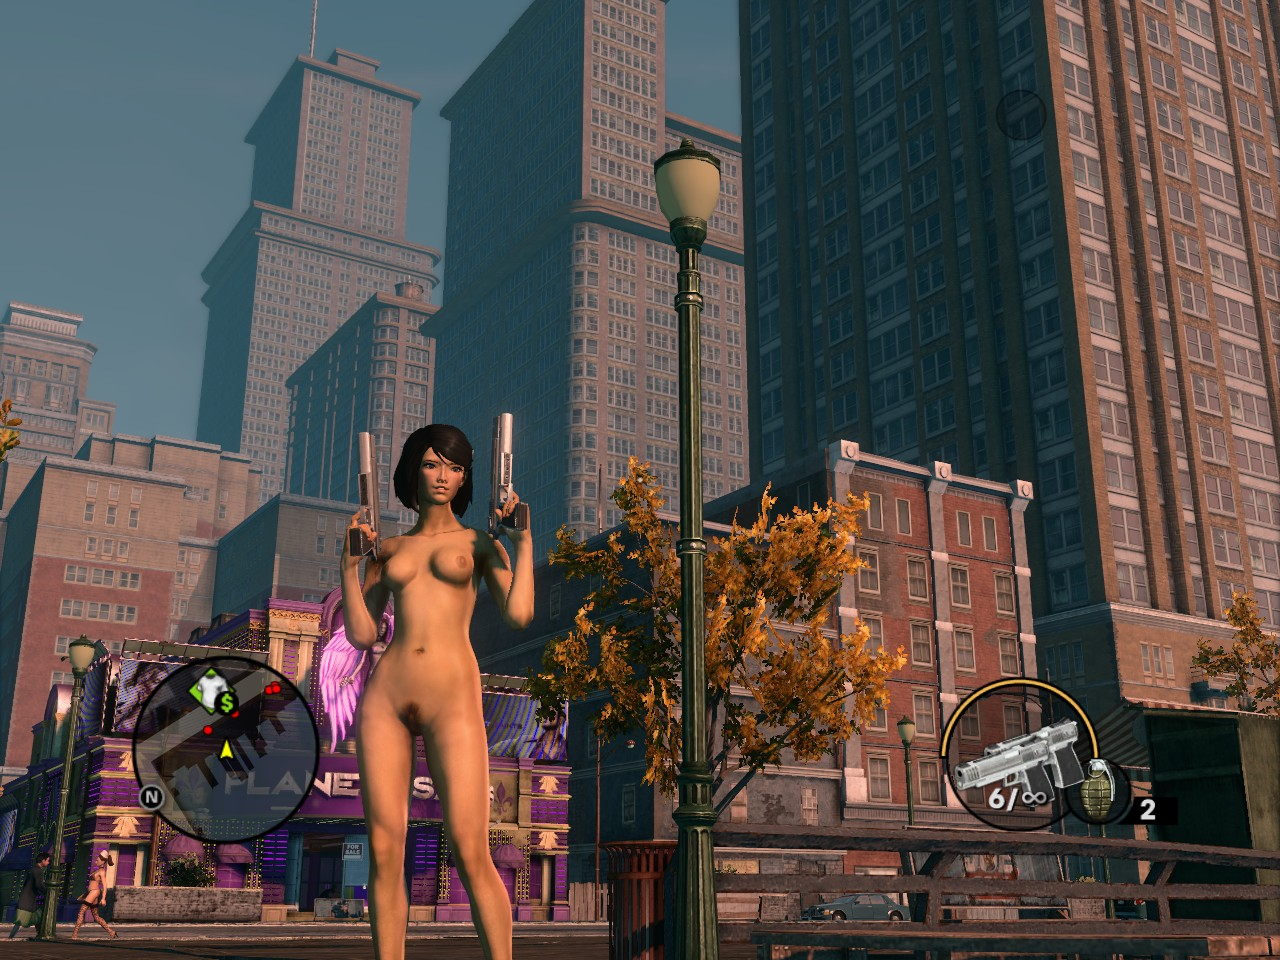 Saints row 2 uncensored patch softcore hd models